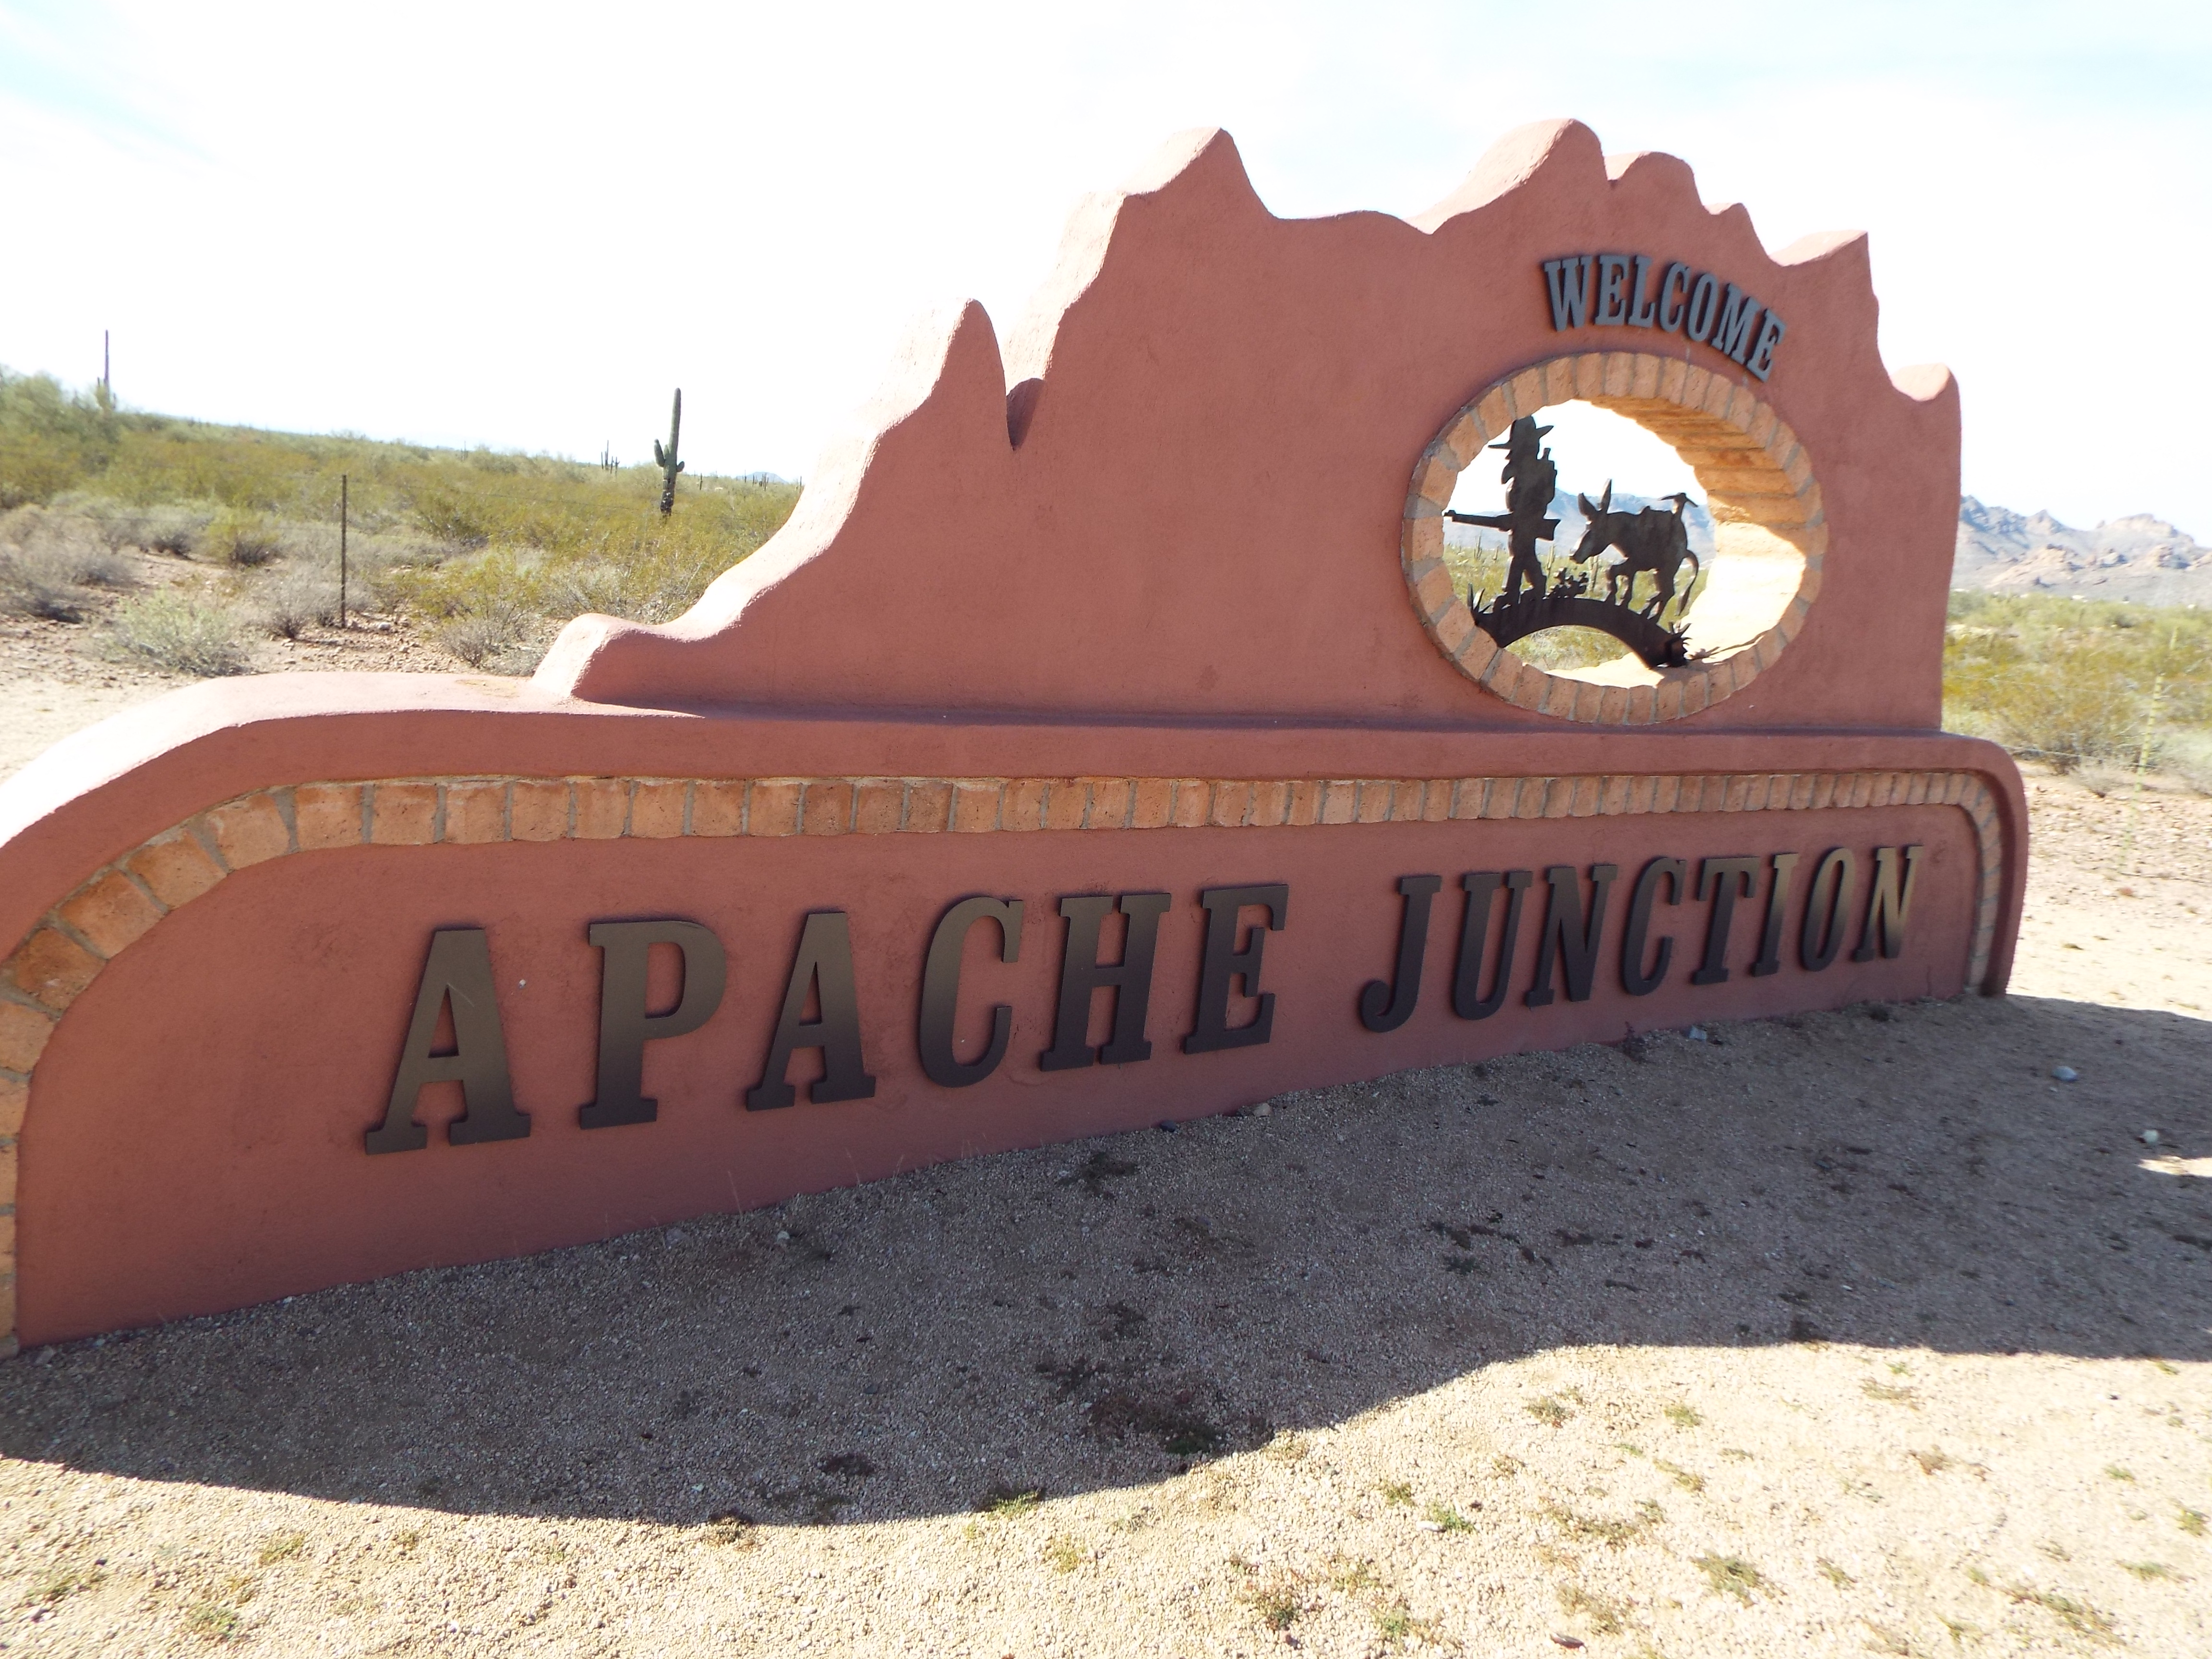 Apache Junction, Arizona - Wikipedia on map of caves in oklahoma, lakes in arizona, street map apache junction arizona, map of the arizona trail, map of apache lake arizona, drive the apache trail arizona, lost dutchman mine map arizona, map of goldfield ghost town, map of roosevelt, cutthroat campground arizona, mt. baldy arizona, map of fort apache arizona, map of lakes off of i 70 in colorado, map of the apache, goldfield ghost town phoenix arizona, apache reservation arizona, map of arizona's highways only, cities in apache county arizona, ohv trails arizona, map of az,